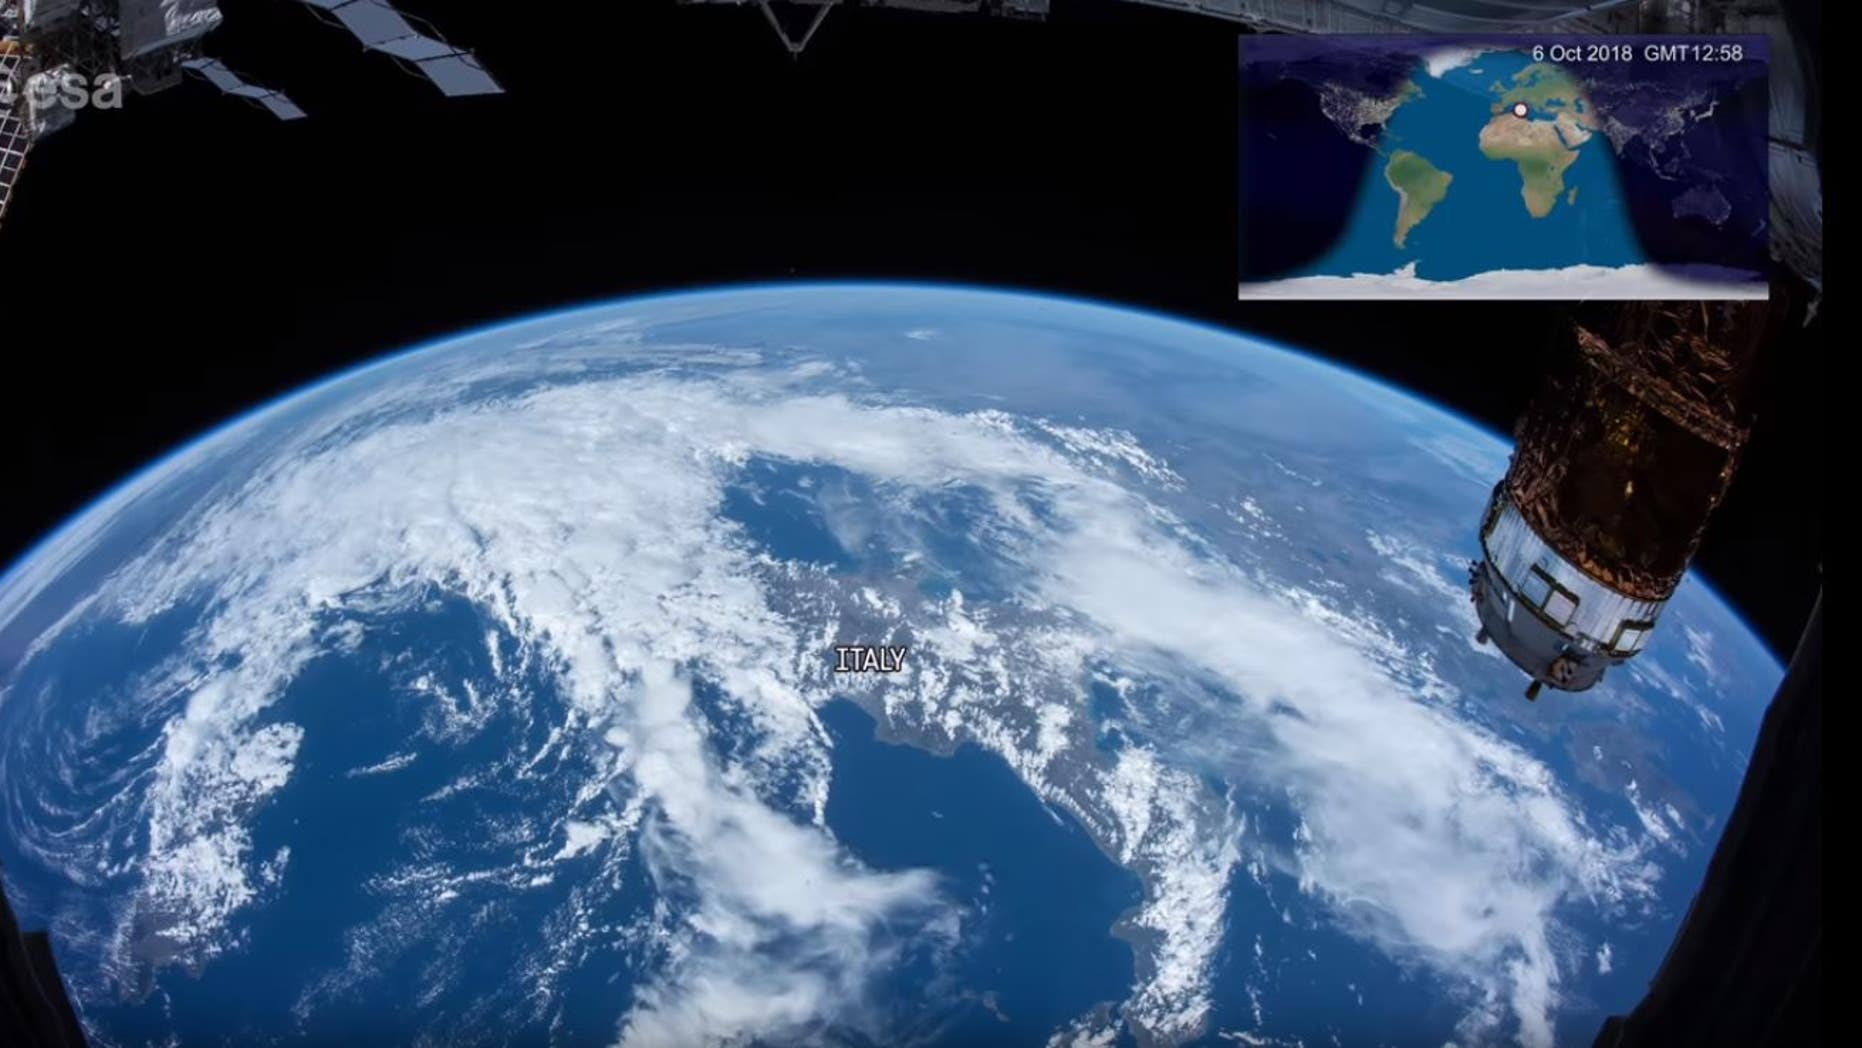 This YouTube screen grab shows Earth as viewed from the International Space Station.